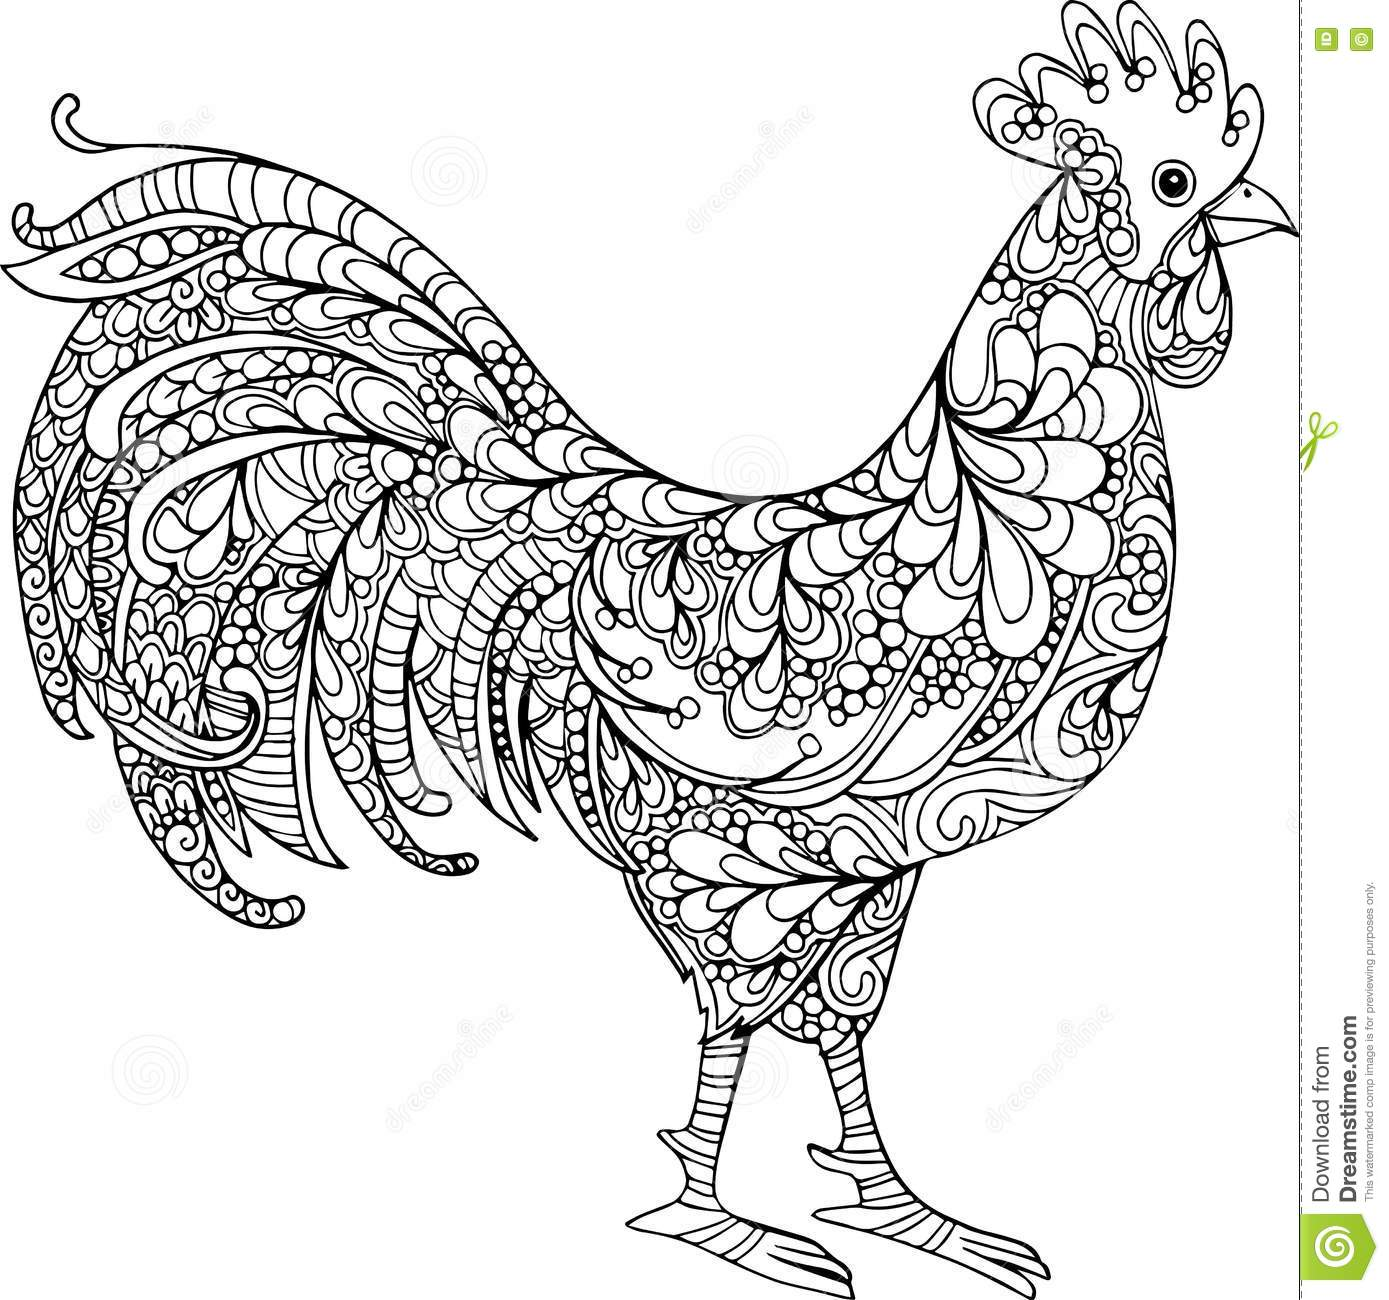 Line Drawing Rooster : Hand drawn vector doodle rooster illustration stock